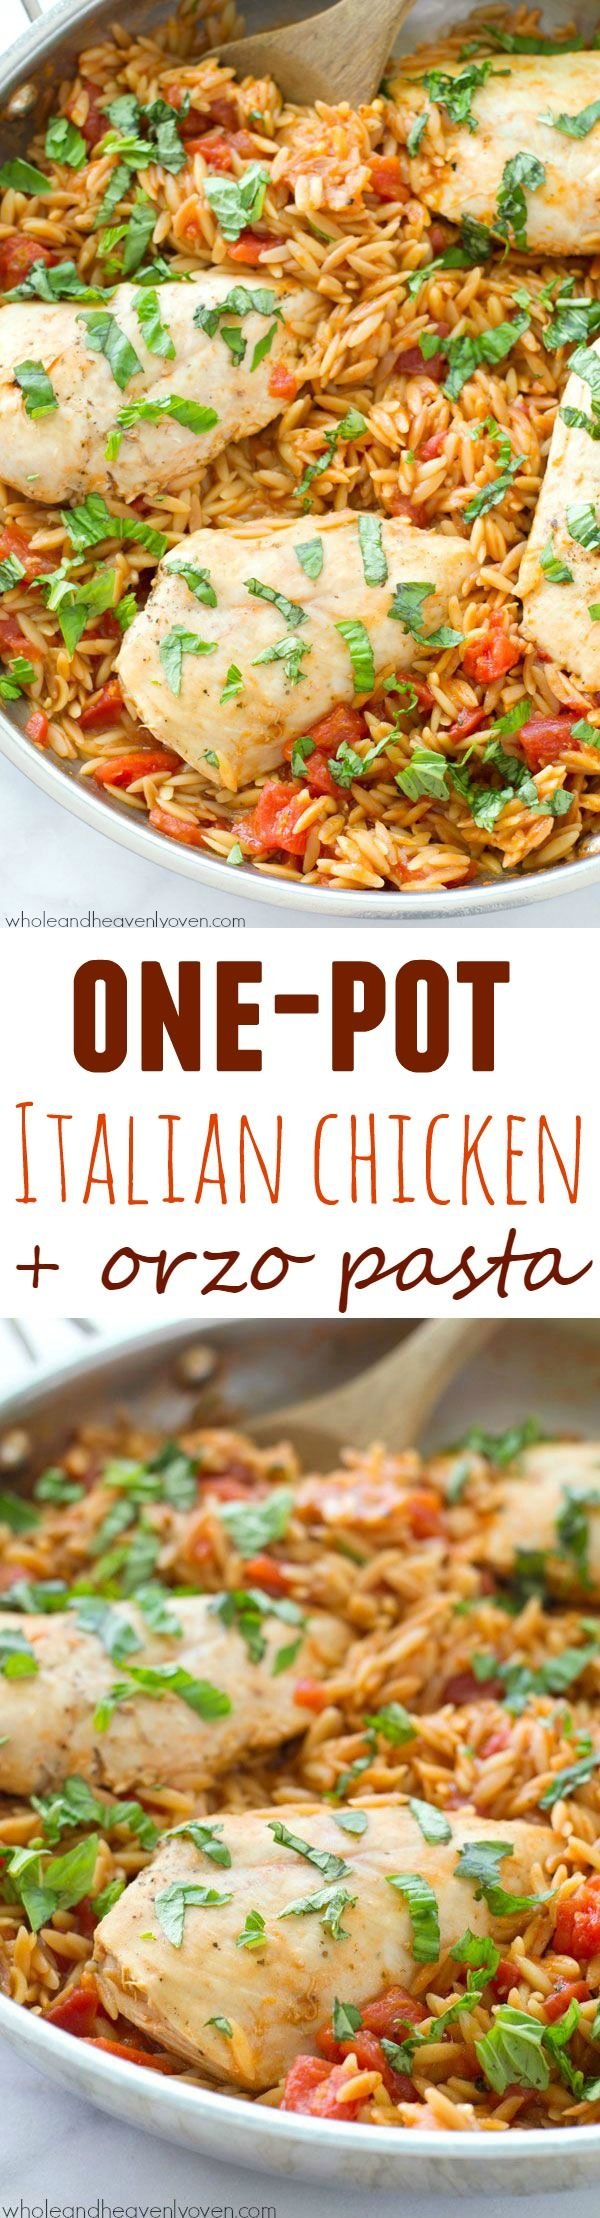 Ready in 30 minutes and made in only one pot, this Italian-style chicken and orzo pasta is total comfort food that anyone can make it's so easy! @WholeHeavenly (Baked Italian Chicken)